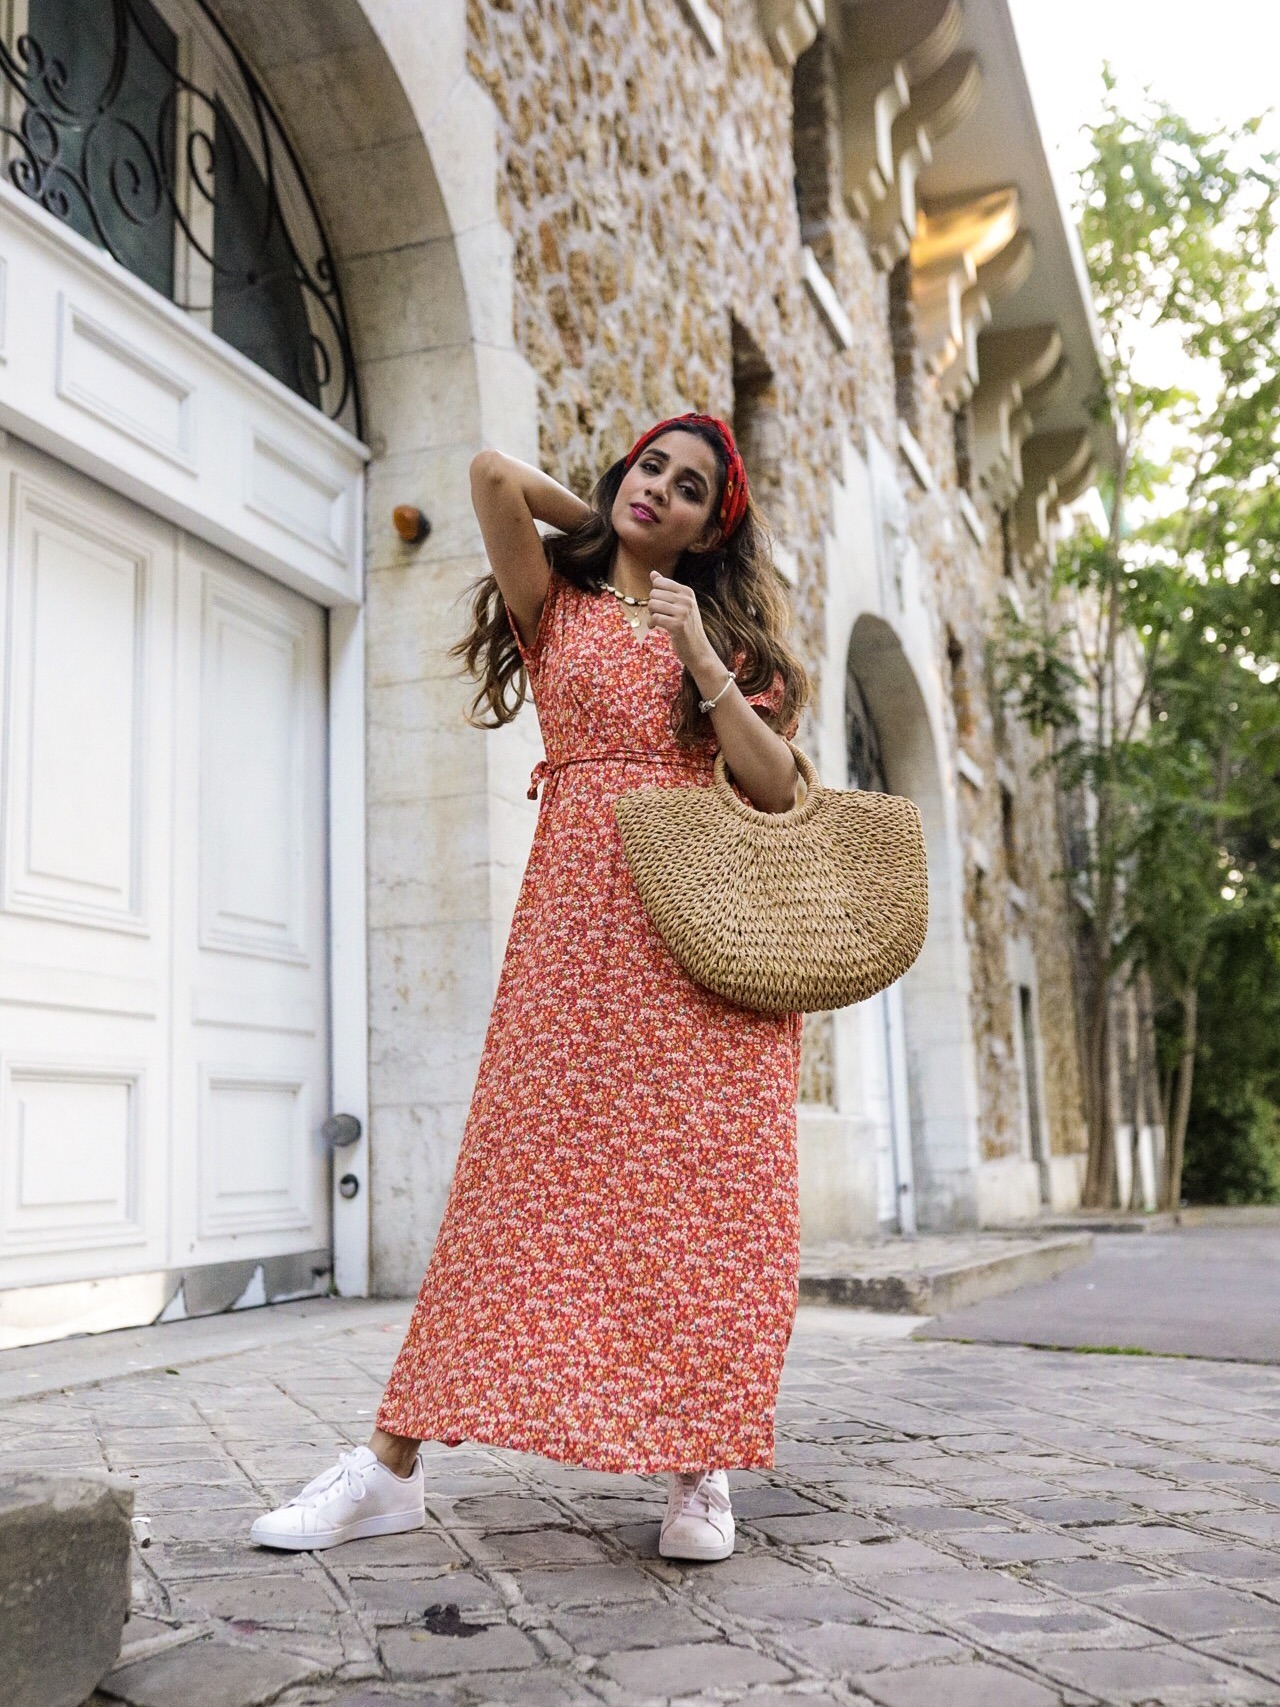 Summer Dress 2019 Roundups Part 1 Faiza Inam Sincerelyhumble maxi dresses Bouquet crossover dress Maison Simons 2